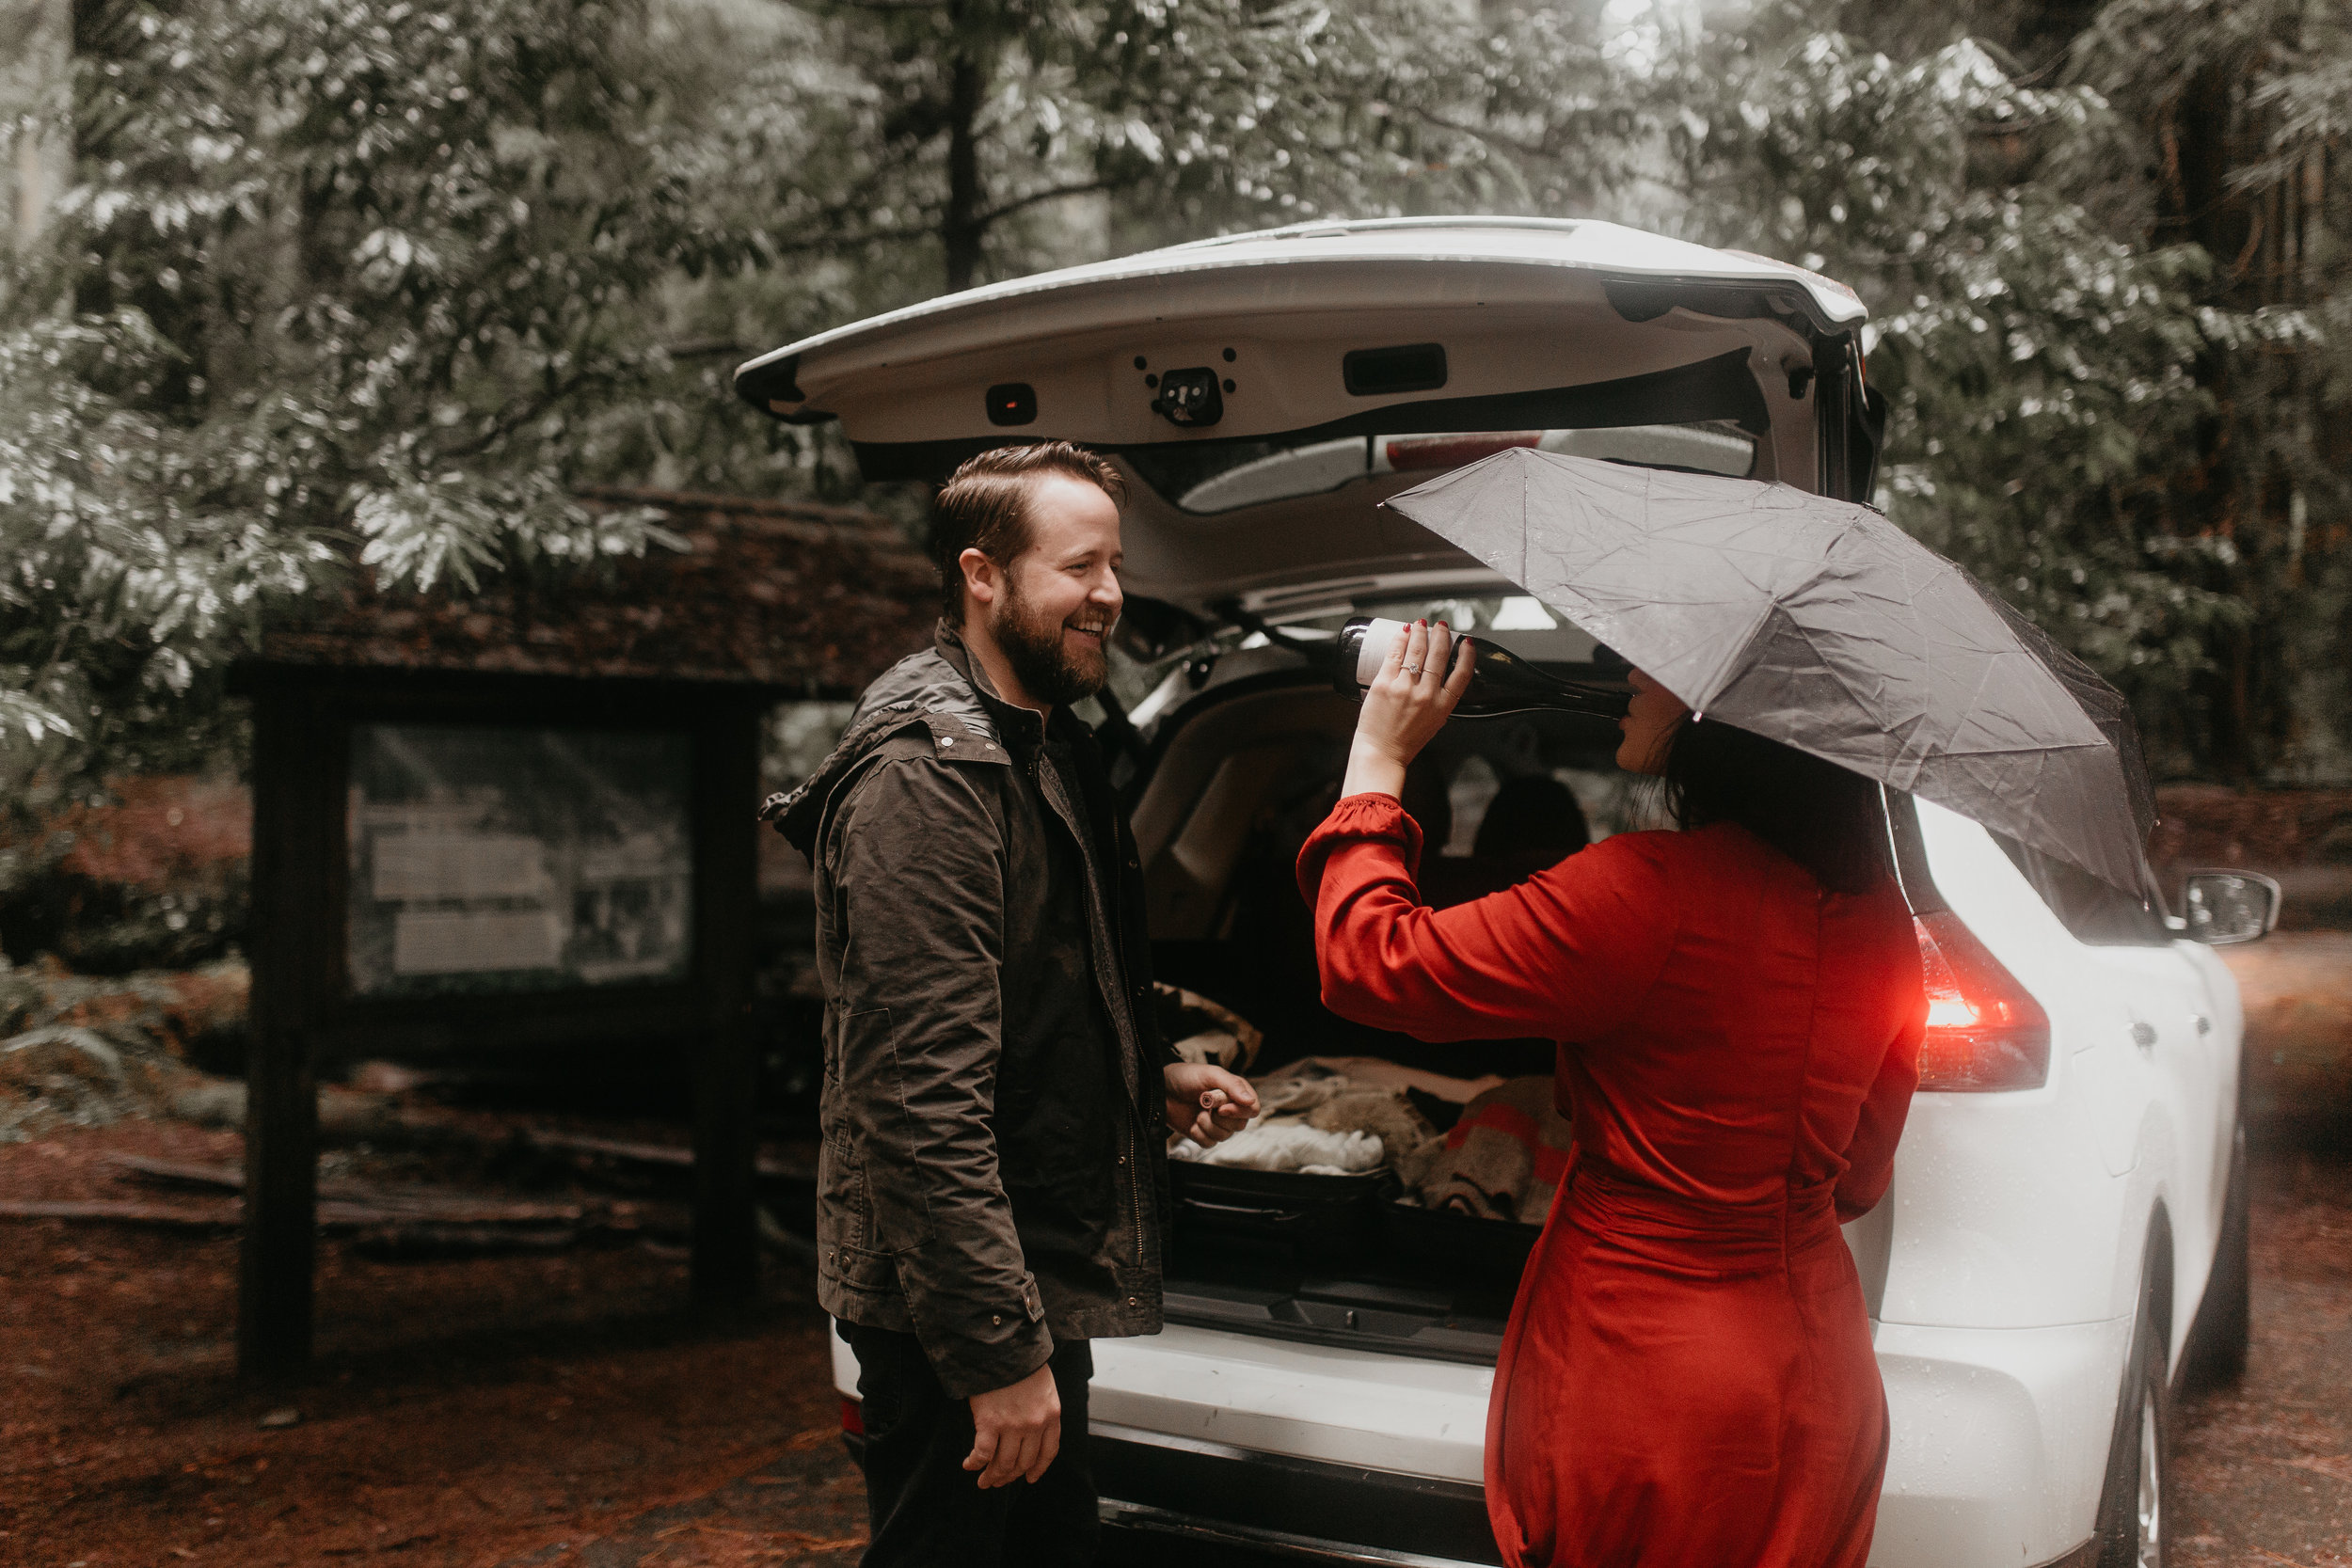 nicole-daacke-photography-redwoods-national-park-forest-rainy-foggy-adventure-engagement-session-humboldt-county-old-growth-redwood-tree-elopement-intimate-wedding-photographer-31.jpg